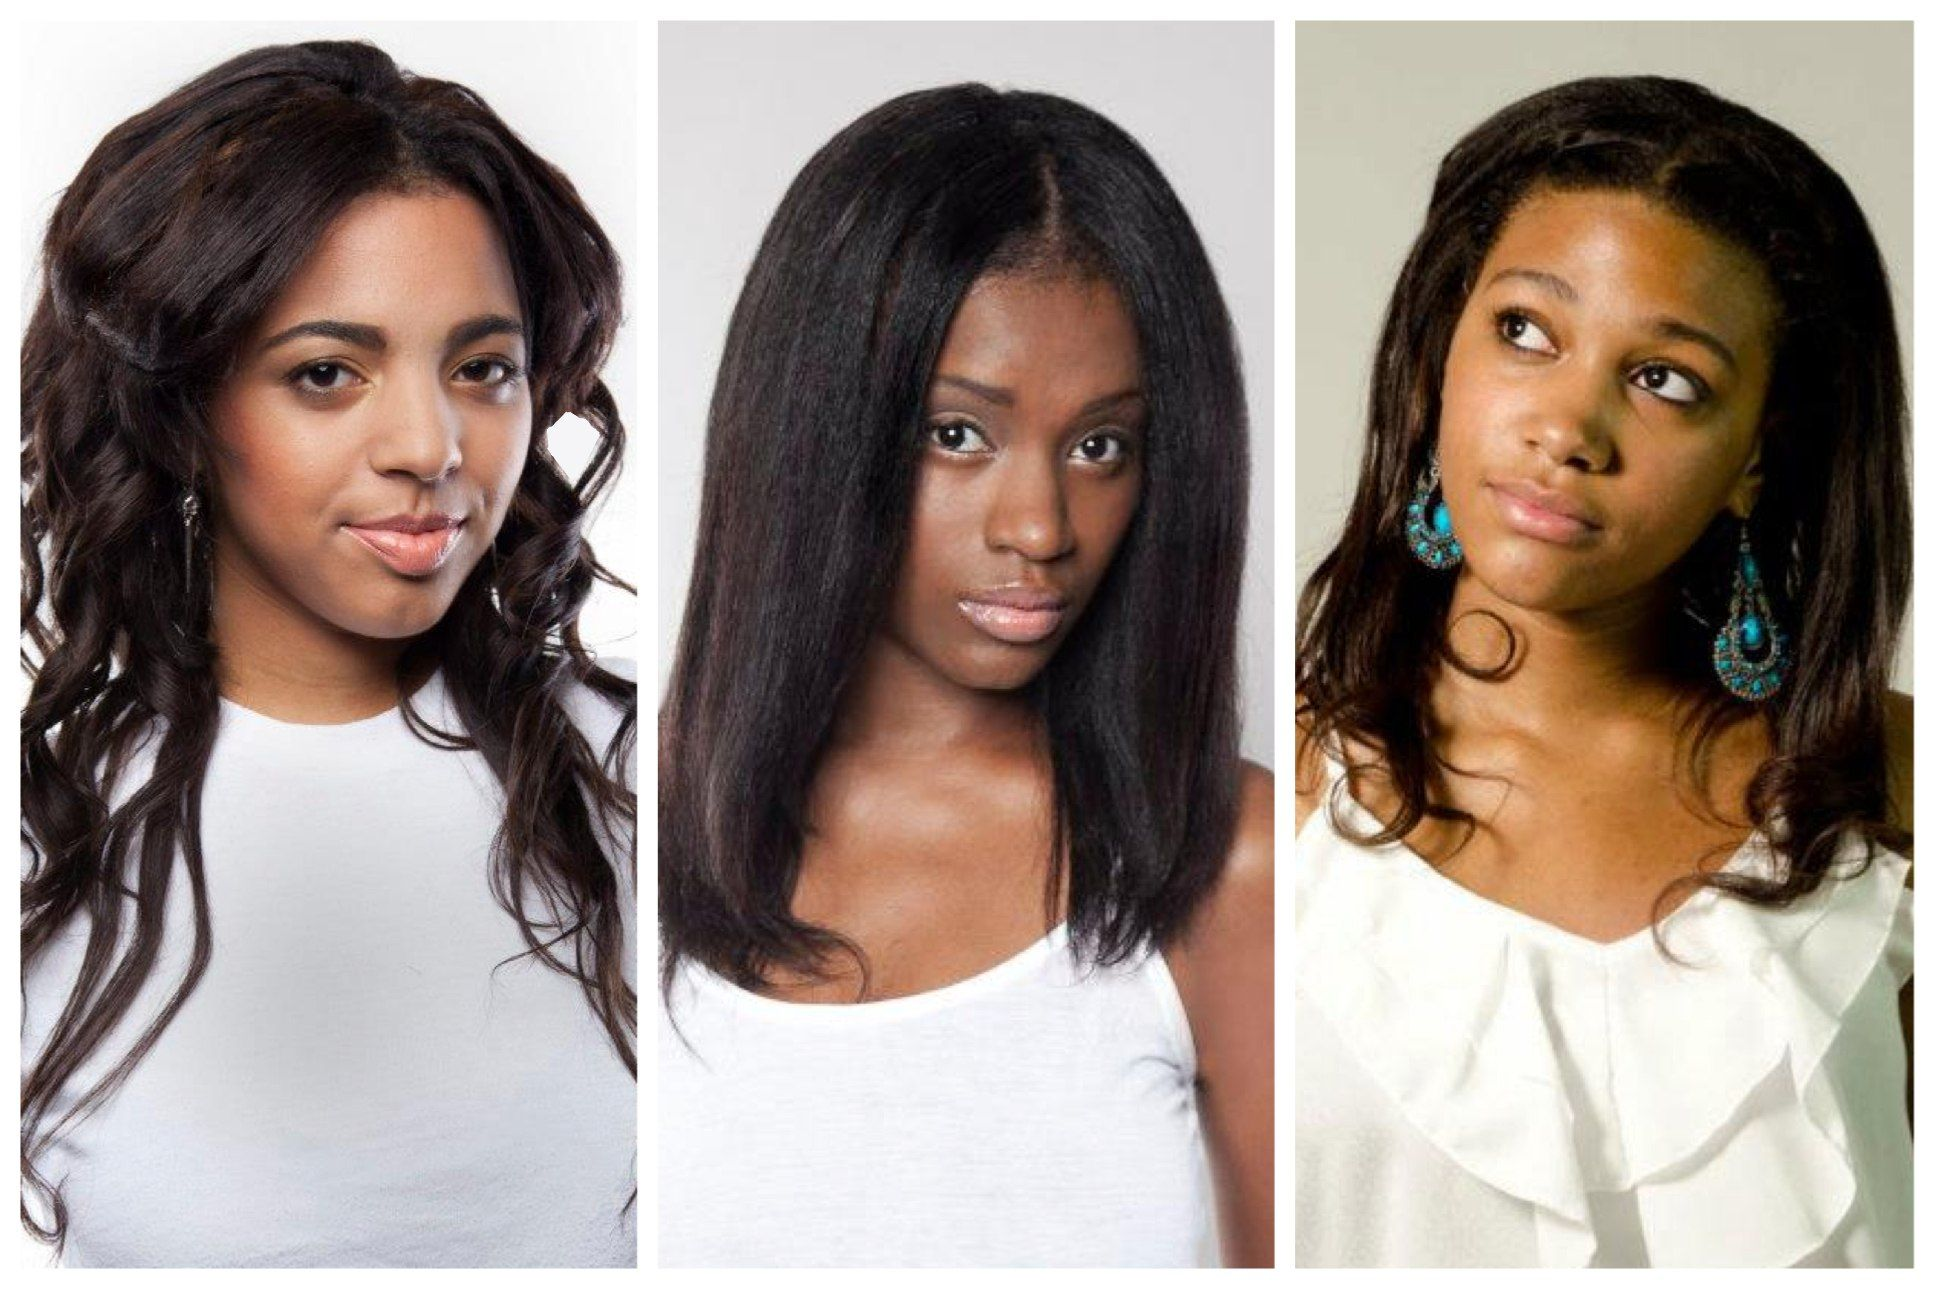 clip in hair extensions for black women www.gorgee.com